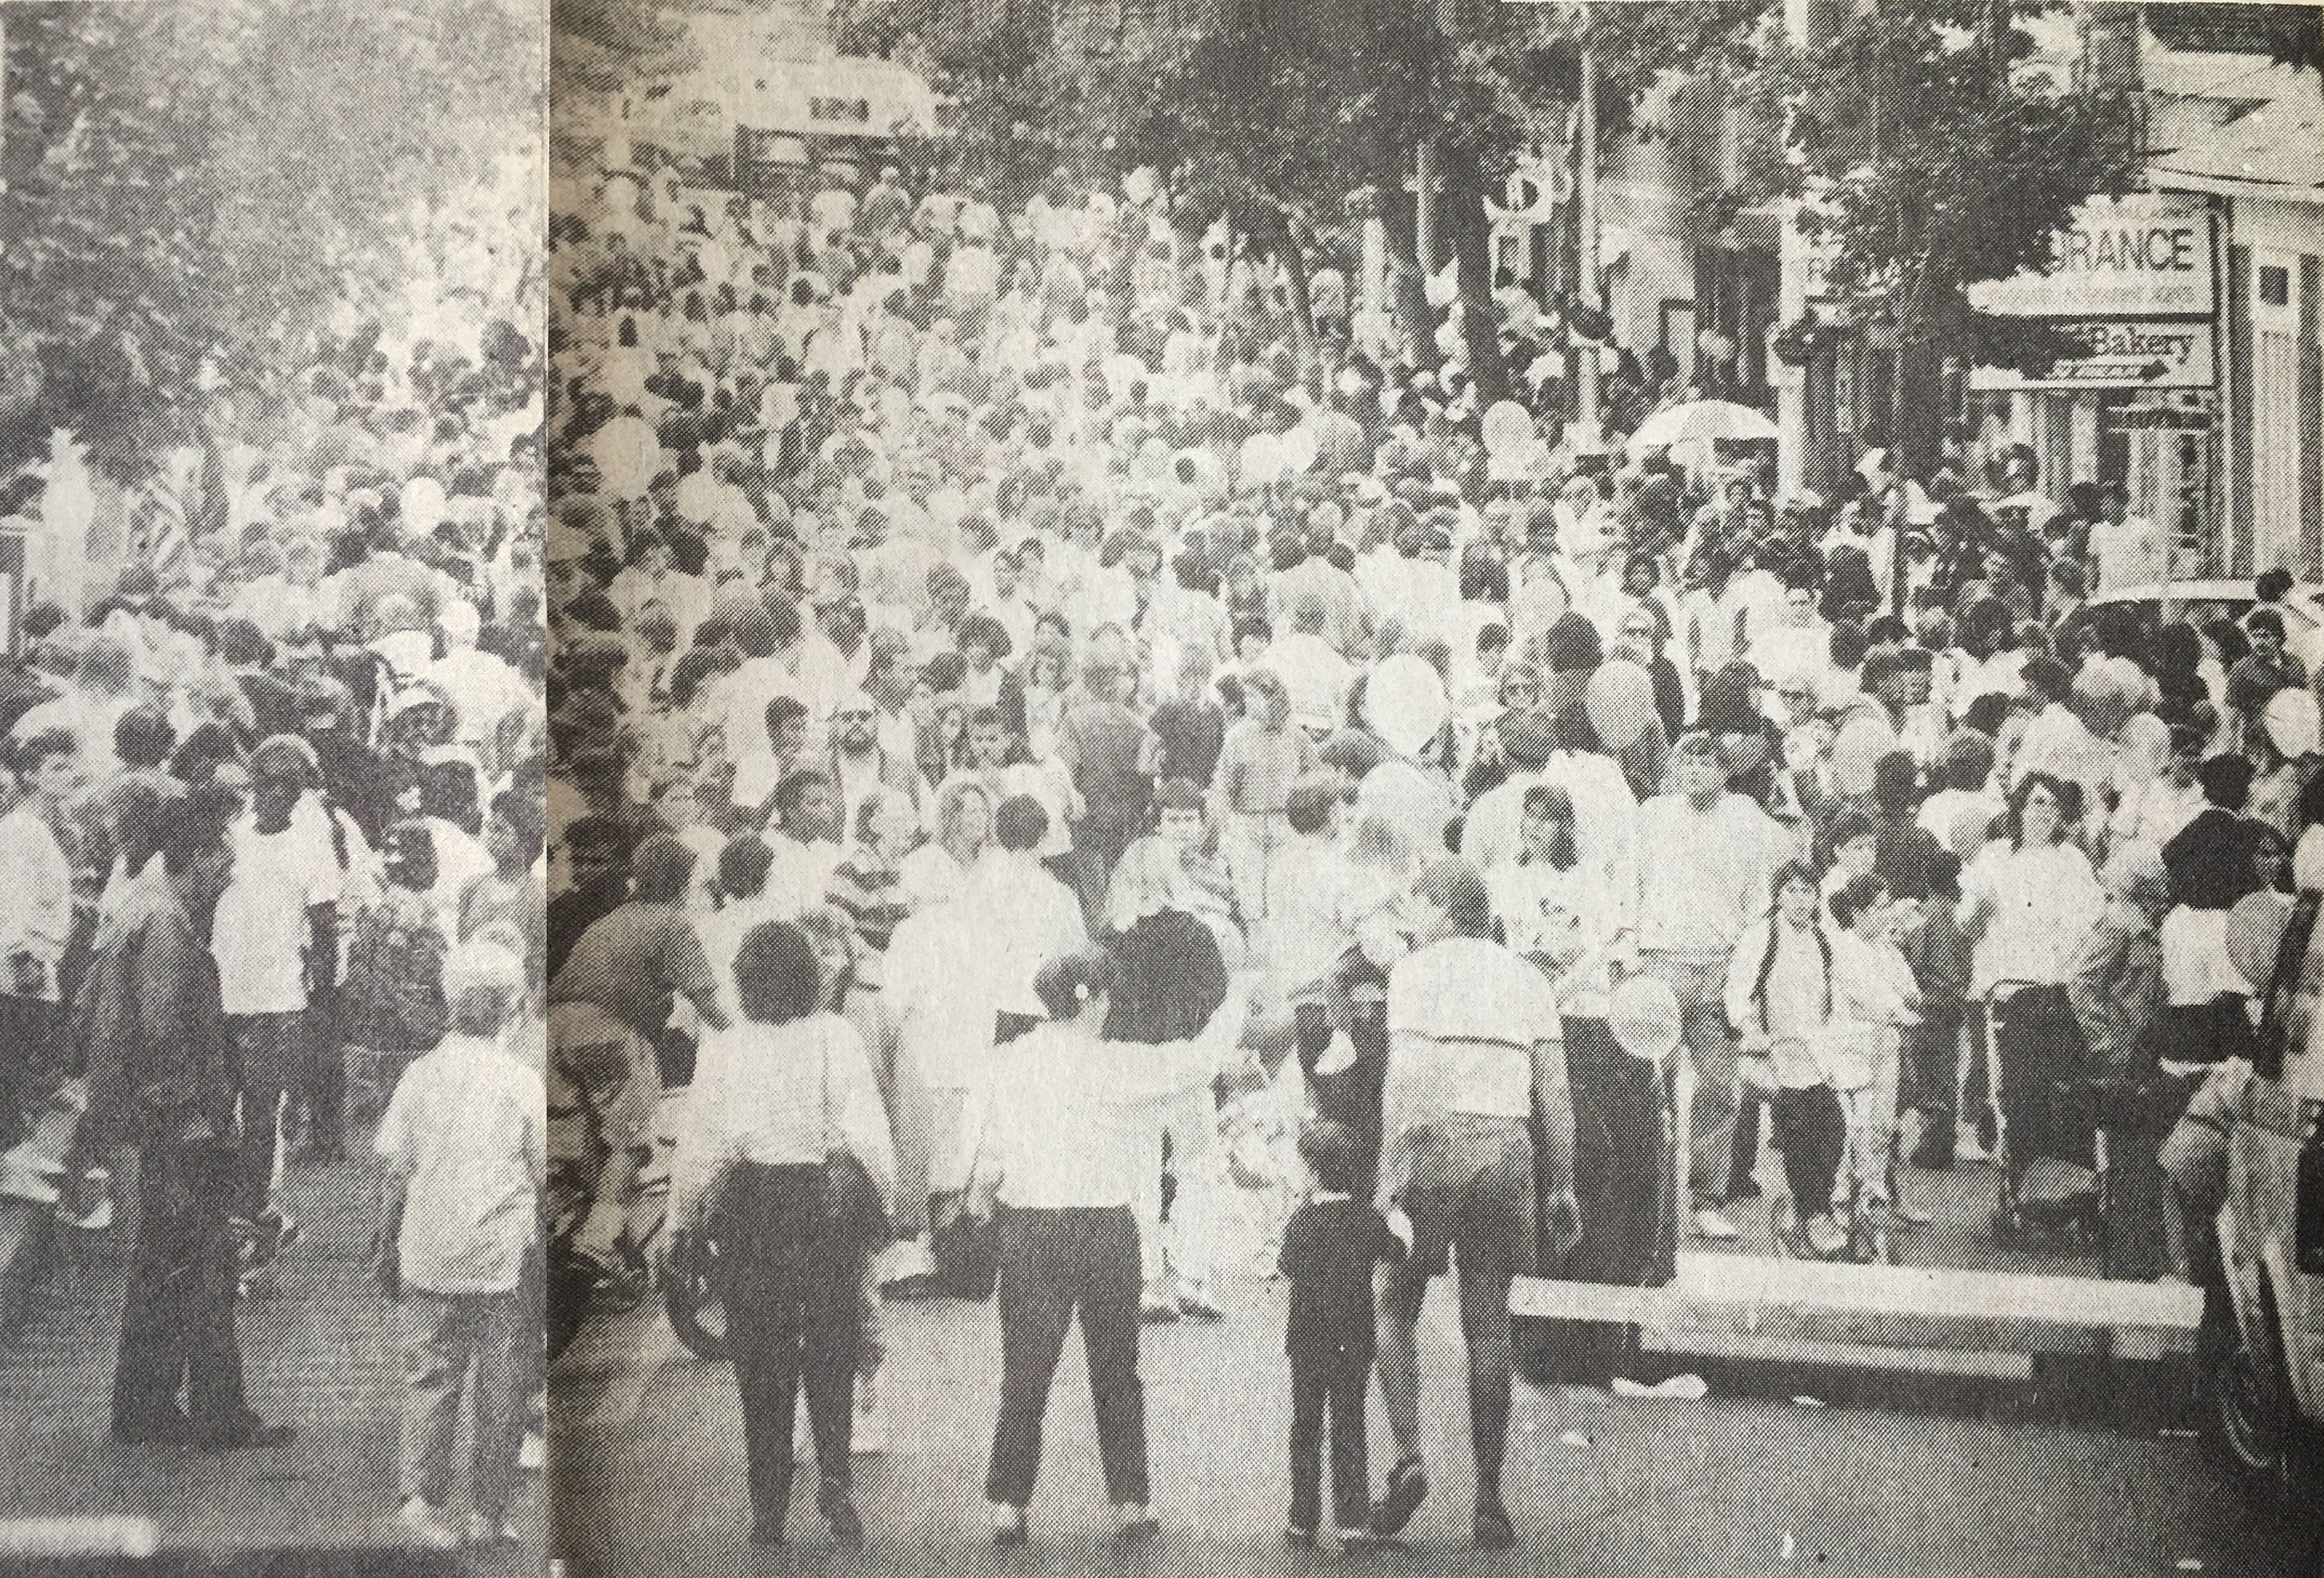 Spirit of Beacon Day 1988, courtesy Beacon Evening News